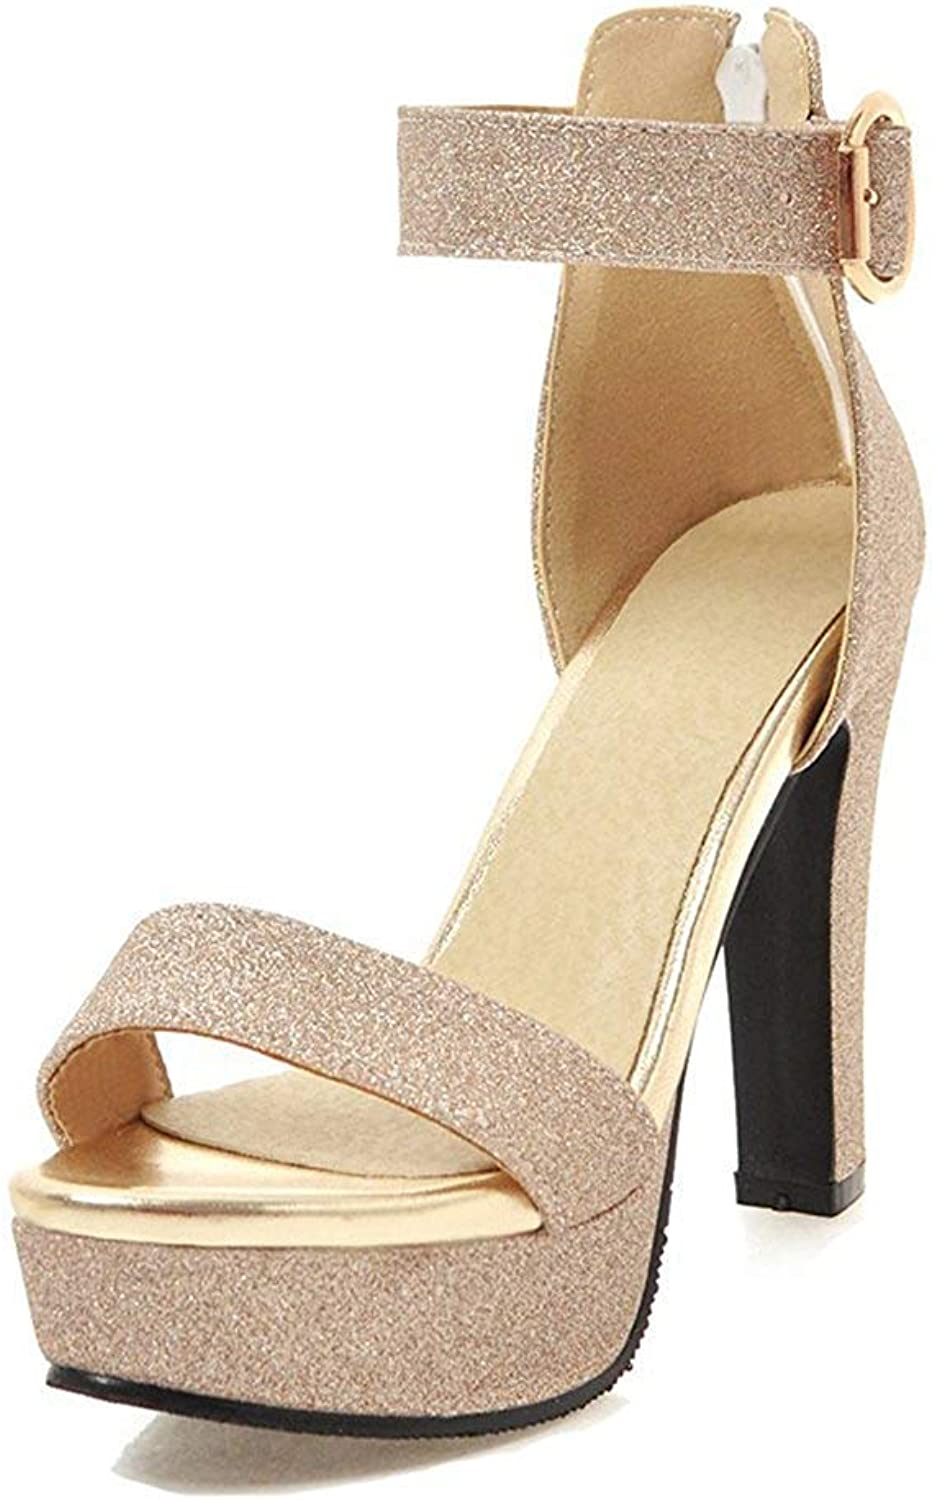 Unm Women's Platform Sandals with Zipper - Open Toe Ankle Strap Chunky Evening - Bridal High Heel Buckle